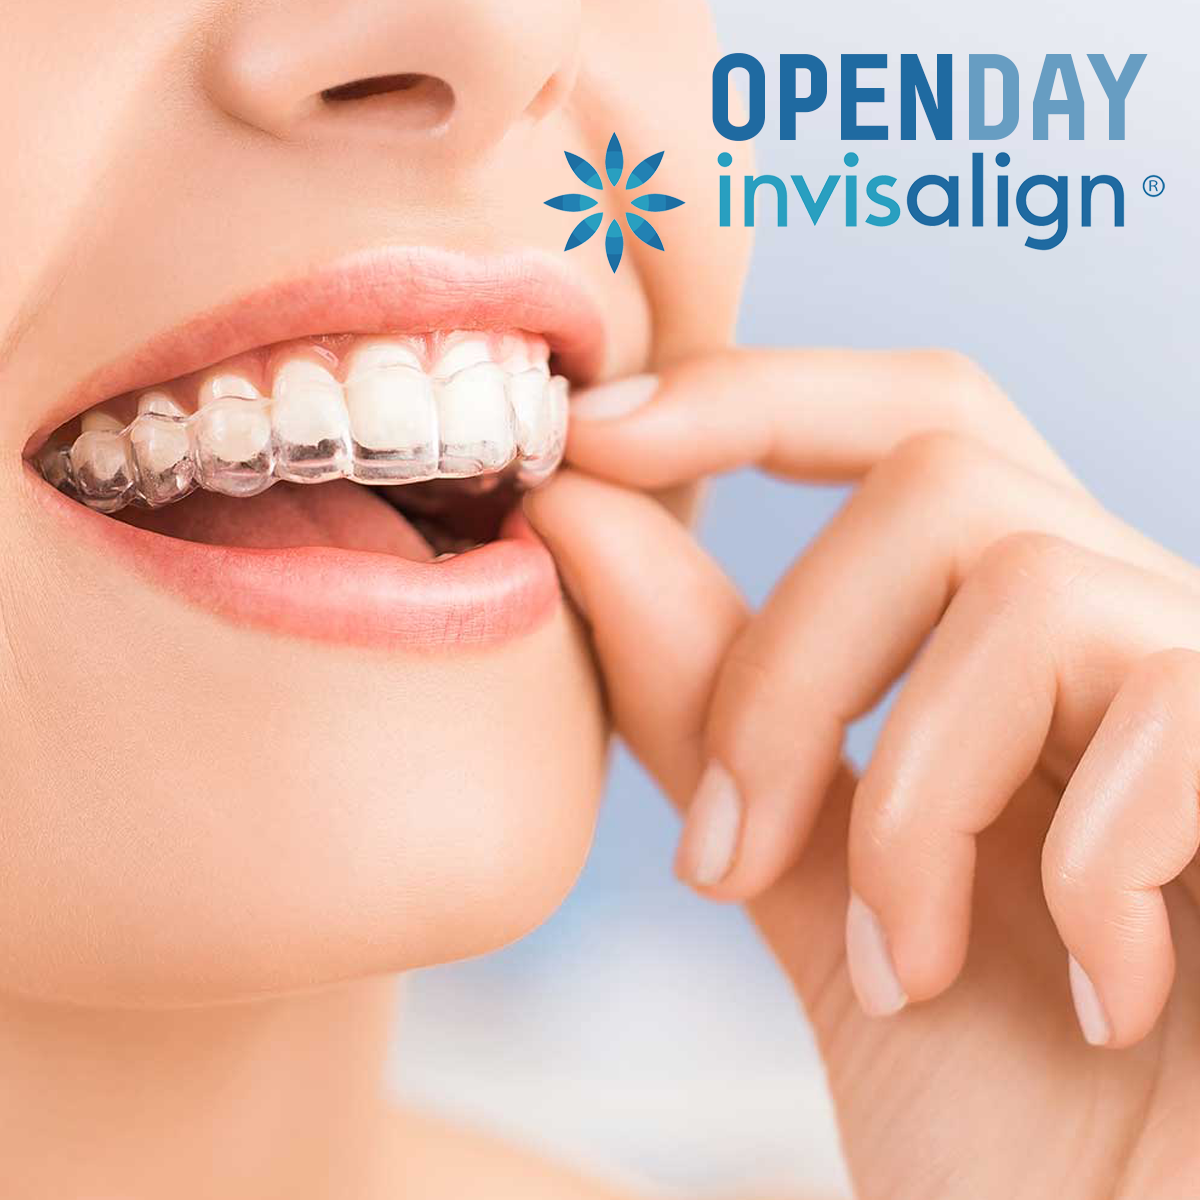 OPEN DAY INVISALIGN 2018